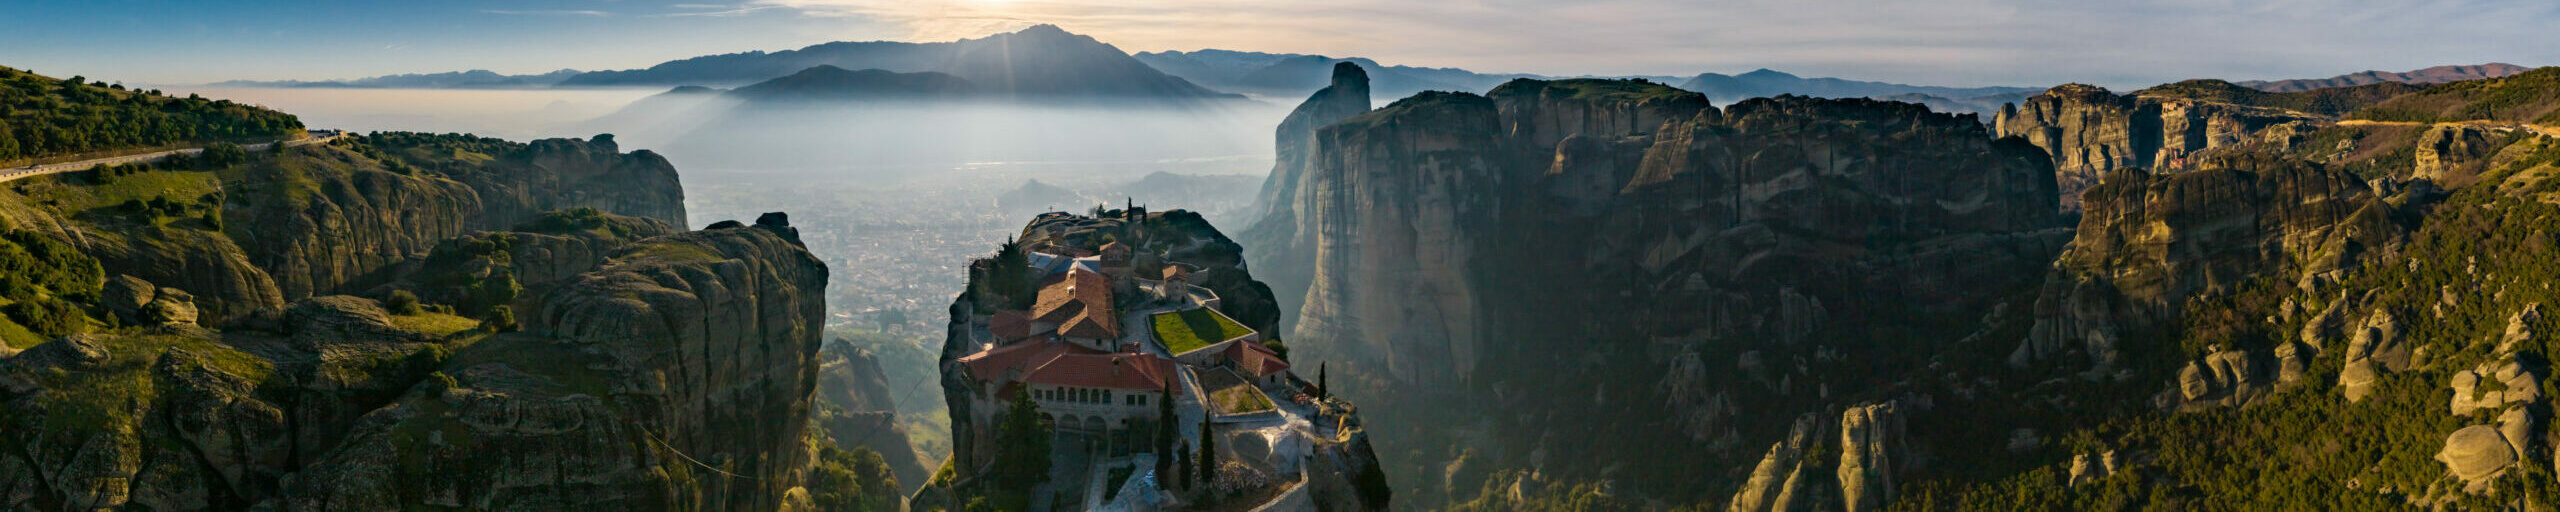 Meteora: The mystical mountains that enchanted a British columnist